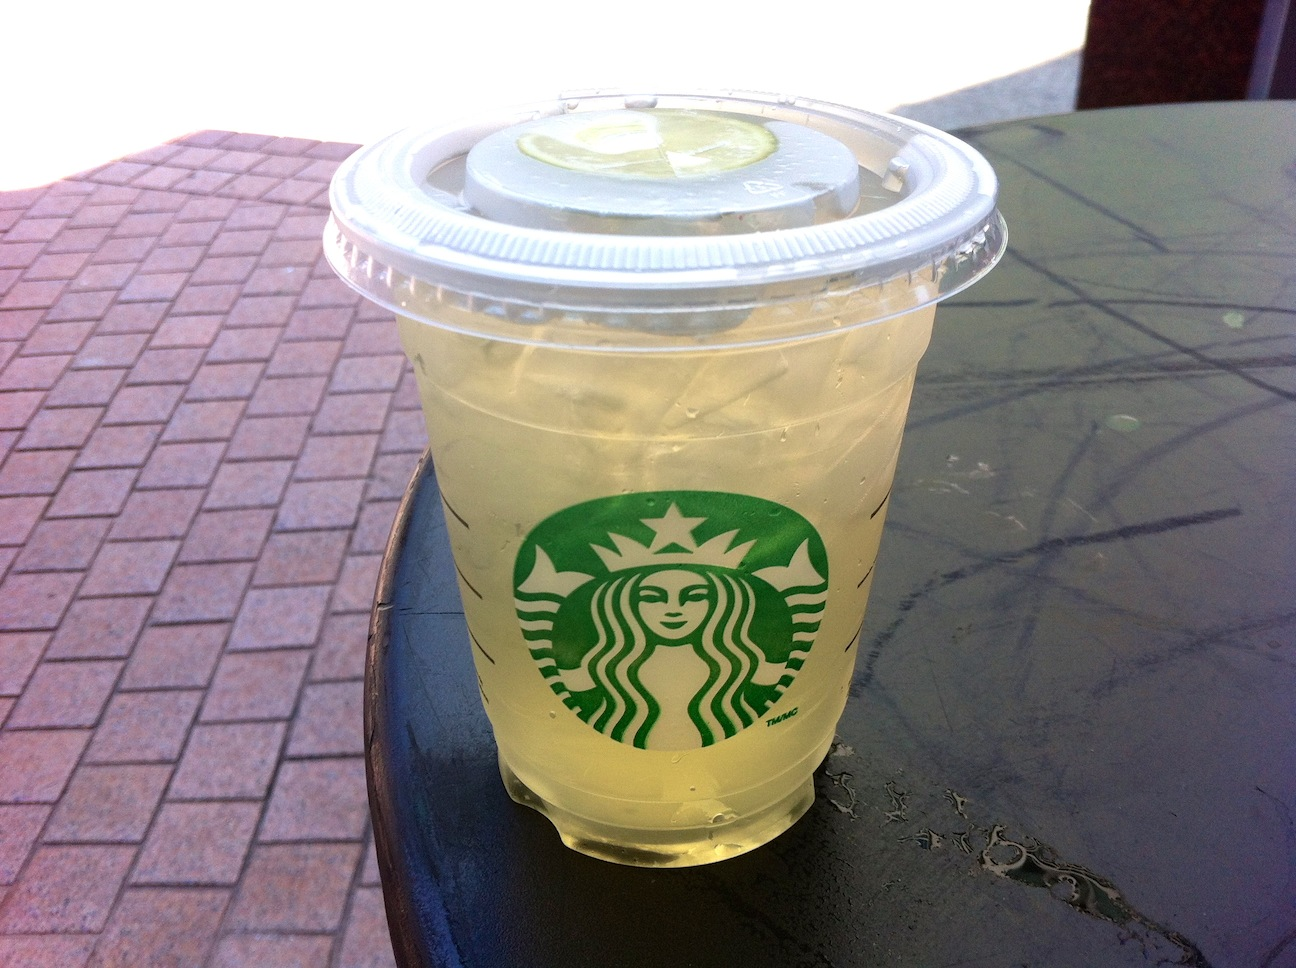 starbucks tea time 8 amazing teas you didn't know you could get at starbucks these secrets were meant for after learning about the delicious frappuccinos you can get off the starbucks secret menu, we realized.